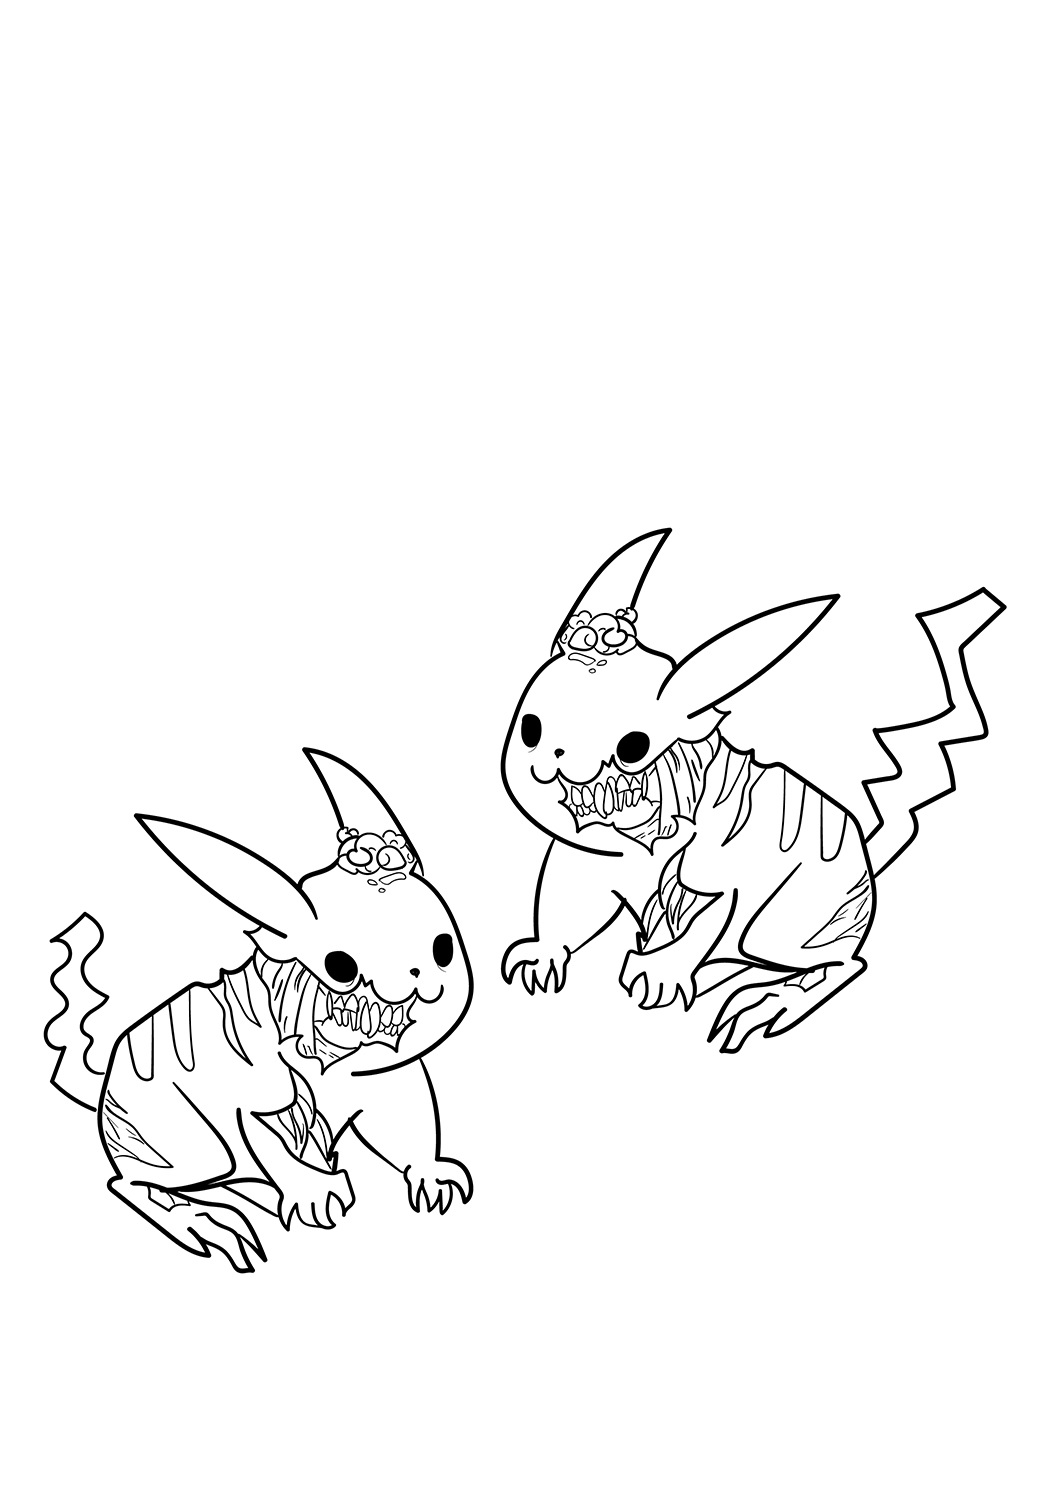 zombie pokemon coloring pages zombie pikachu coloring page through the thousand zombie pages pokemon coloring